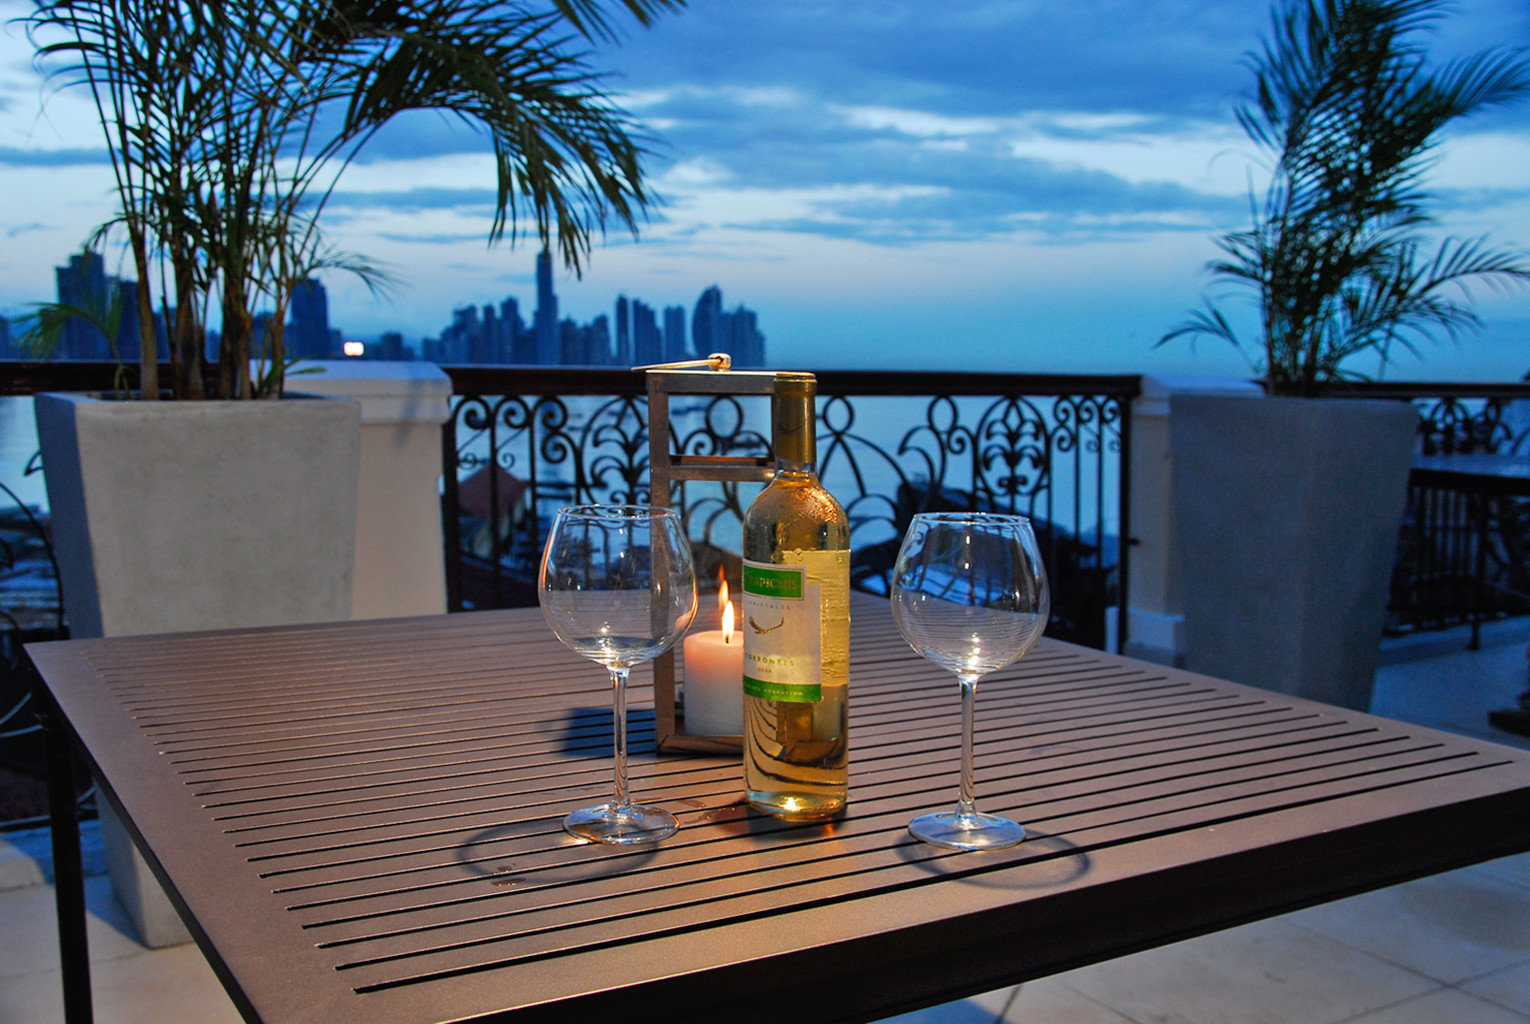 Balcony Boutique Dining Drink Eat Nightlife Scenic views leisure swimming pool property glass Resort home Villa condominium backyard beer